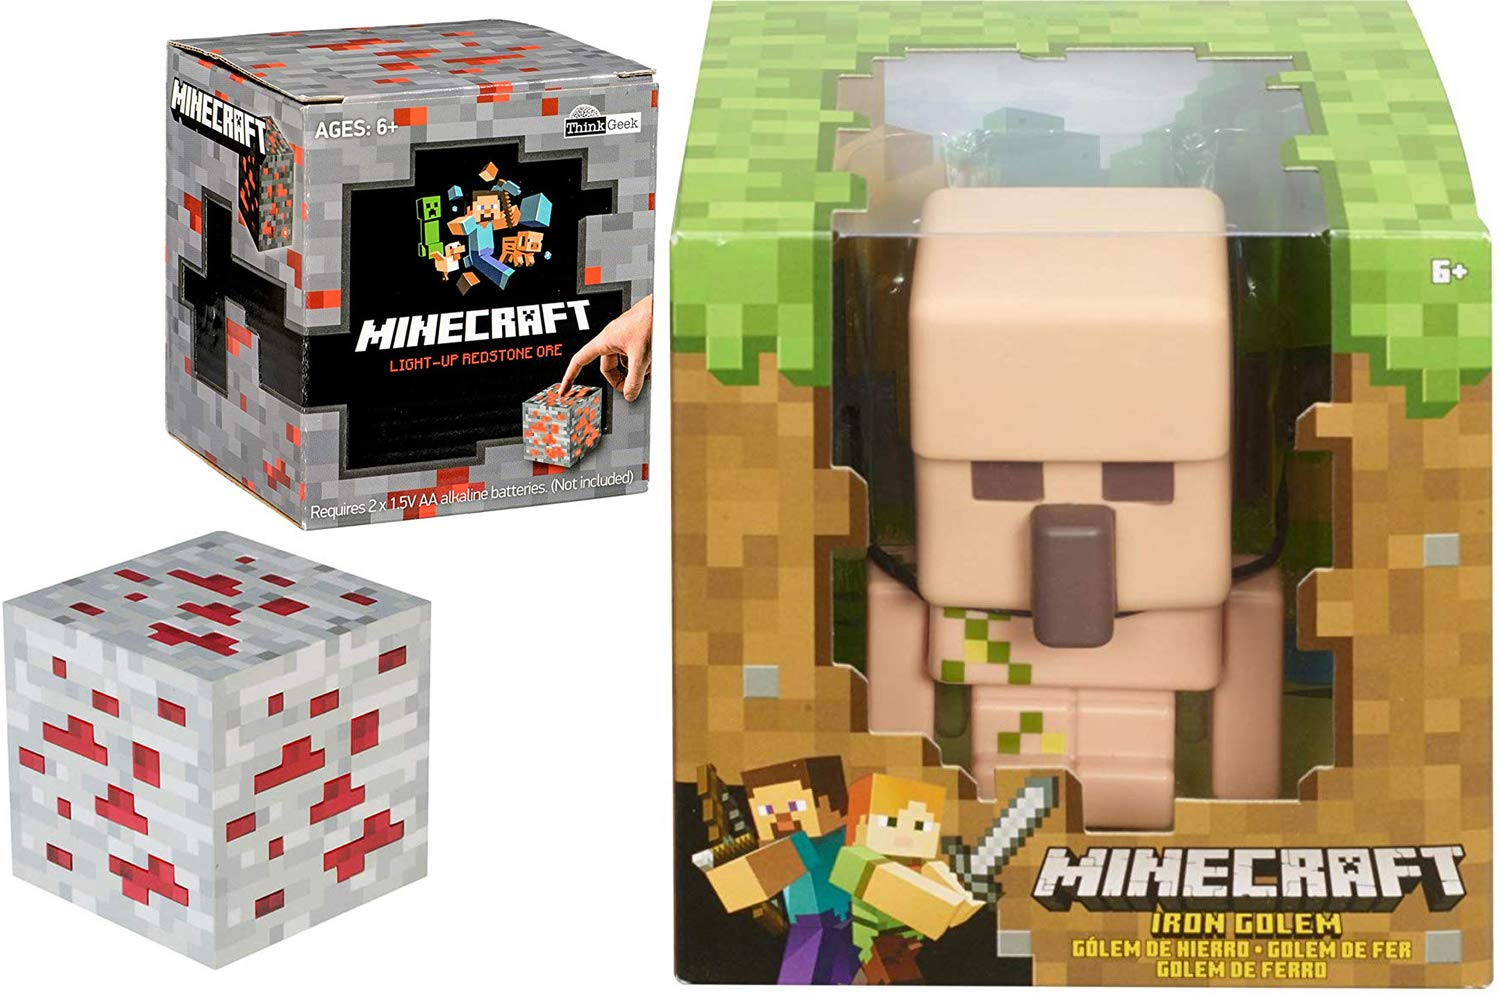 Ore /& Iron Golem Minecraft Figure Enchanted Game Mega Character Bundled with Mini Redston Light-Up Tap Box 8-bit Figure /& Cube 2 Items MC AYB